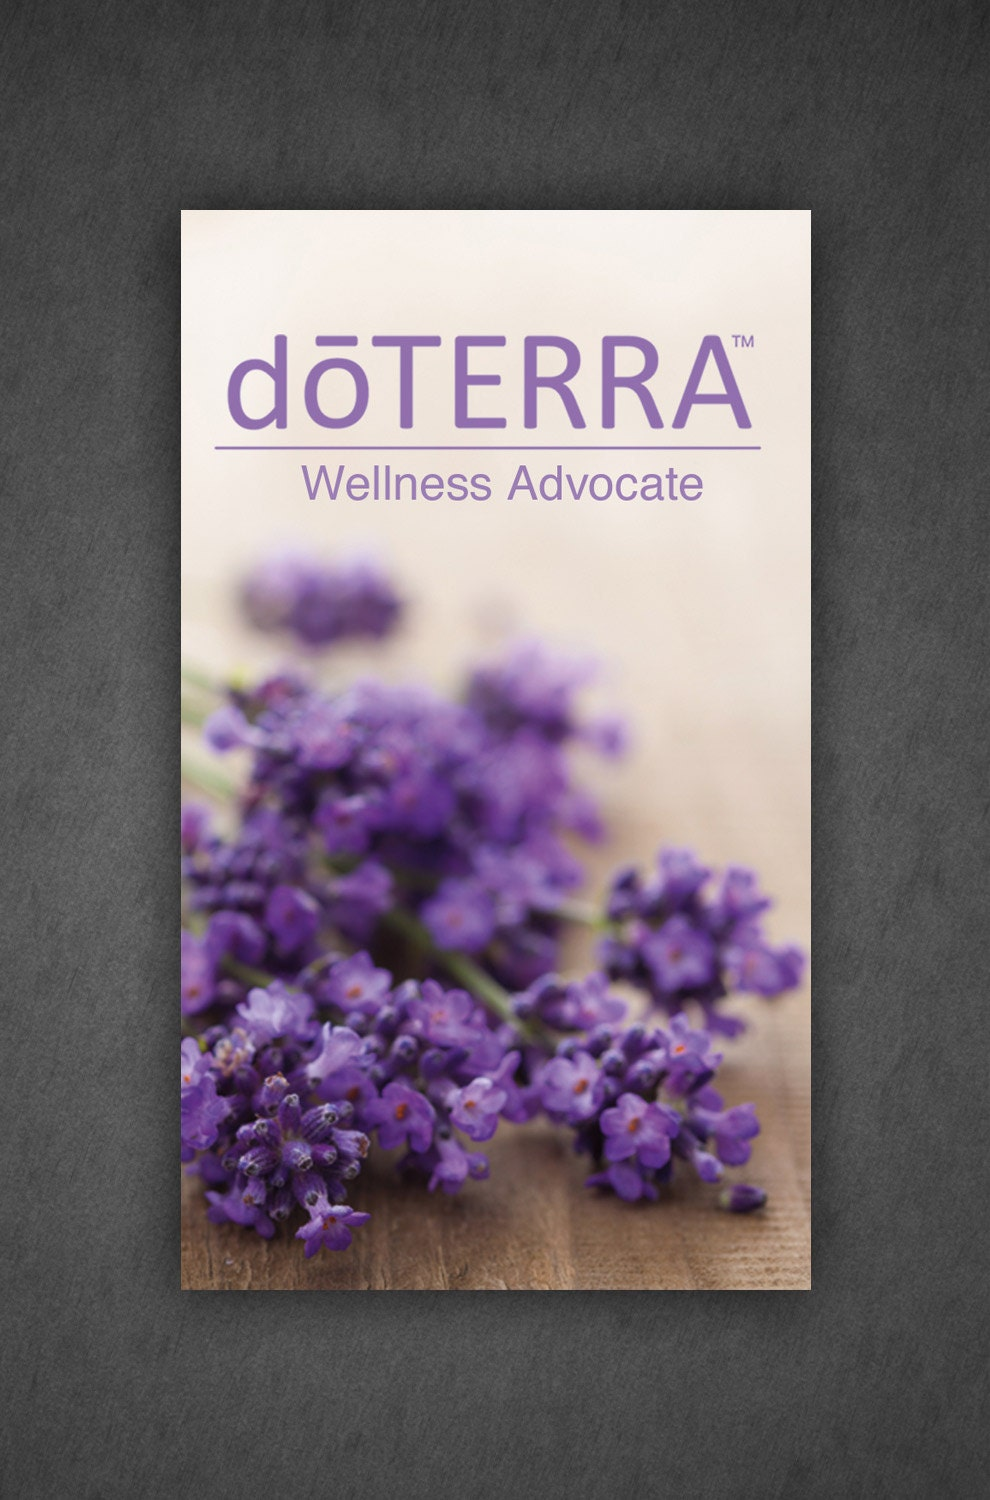 Digital doTerra Business card Design Full Color by